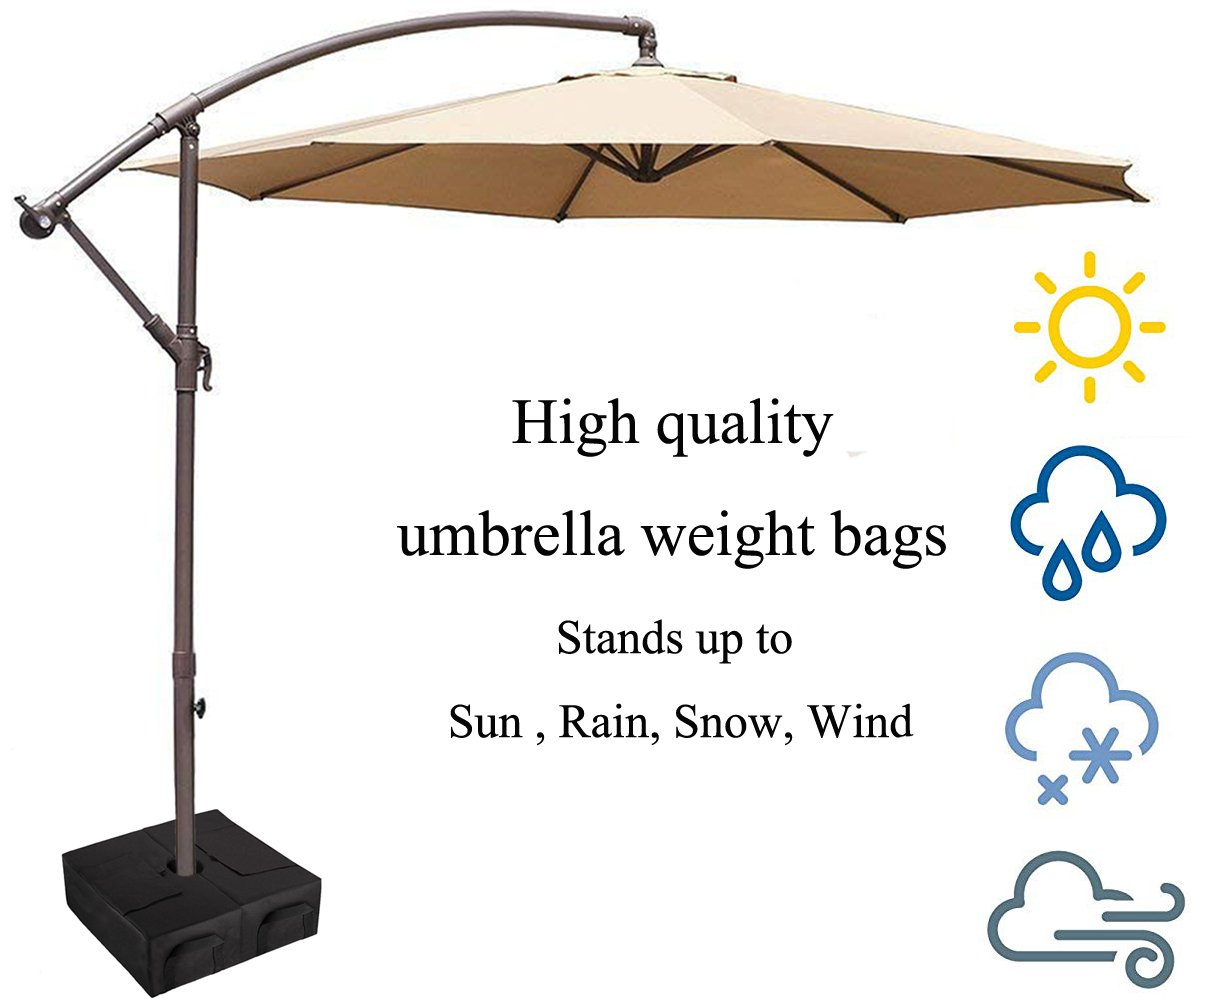 CELEISITE 2-piece Umbrella BASE WEIGHT BAGS, Waterproof Umbrella Stand Weights, 18'' Weight Bags with Shovel for any Offset, Cantilever or Outdoor Patio Umbrella, Easy to Set up by celeisite (Image #3)